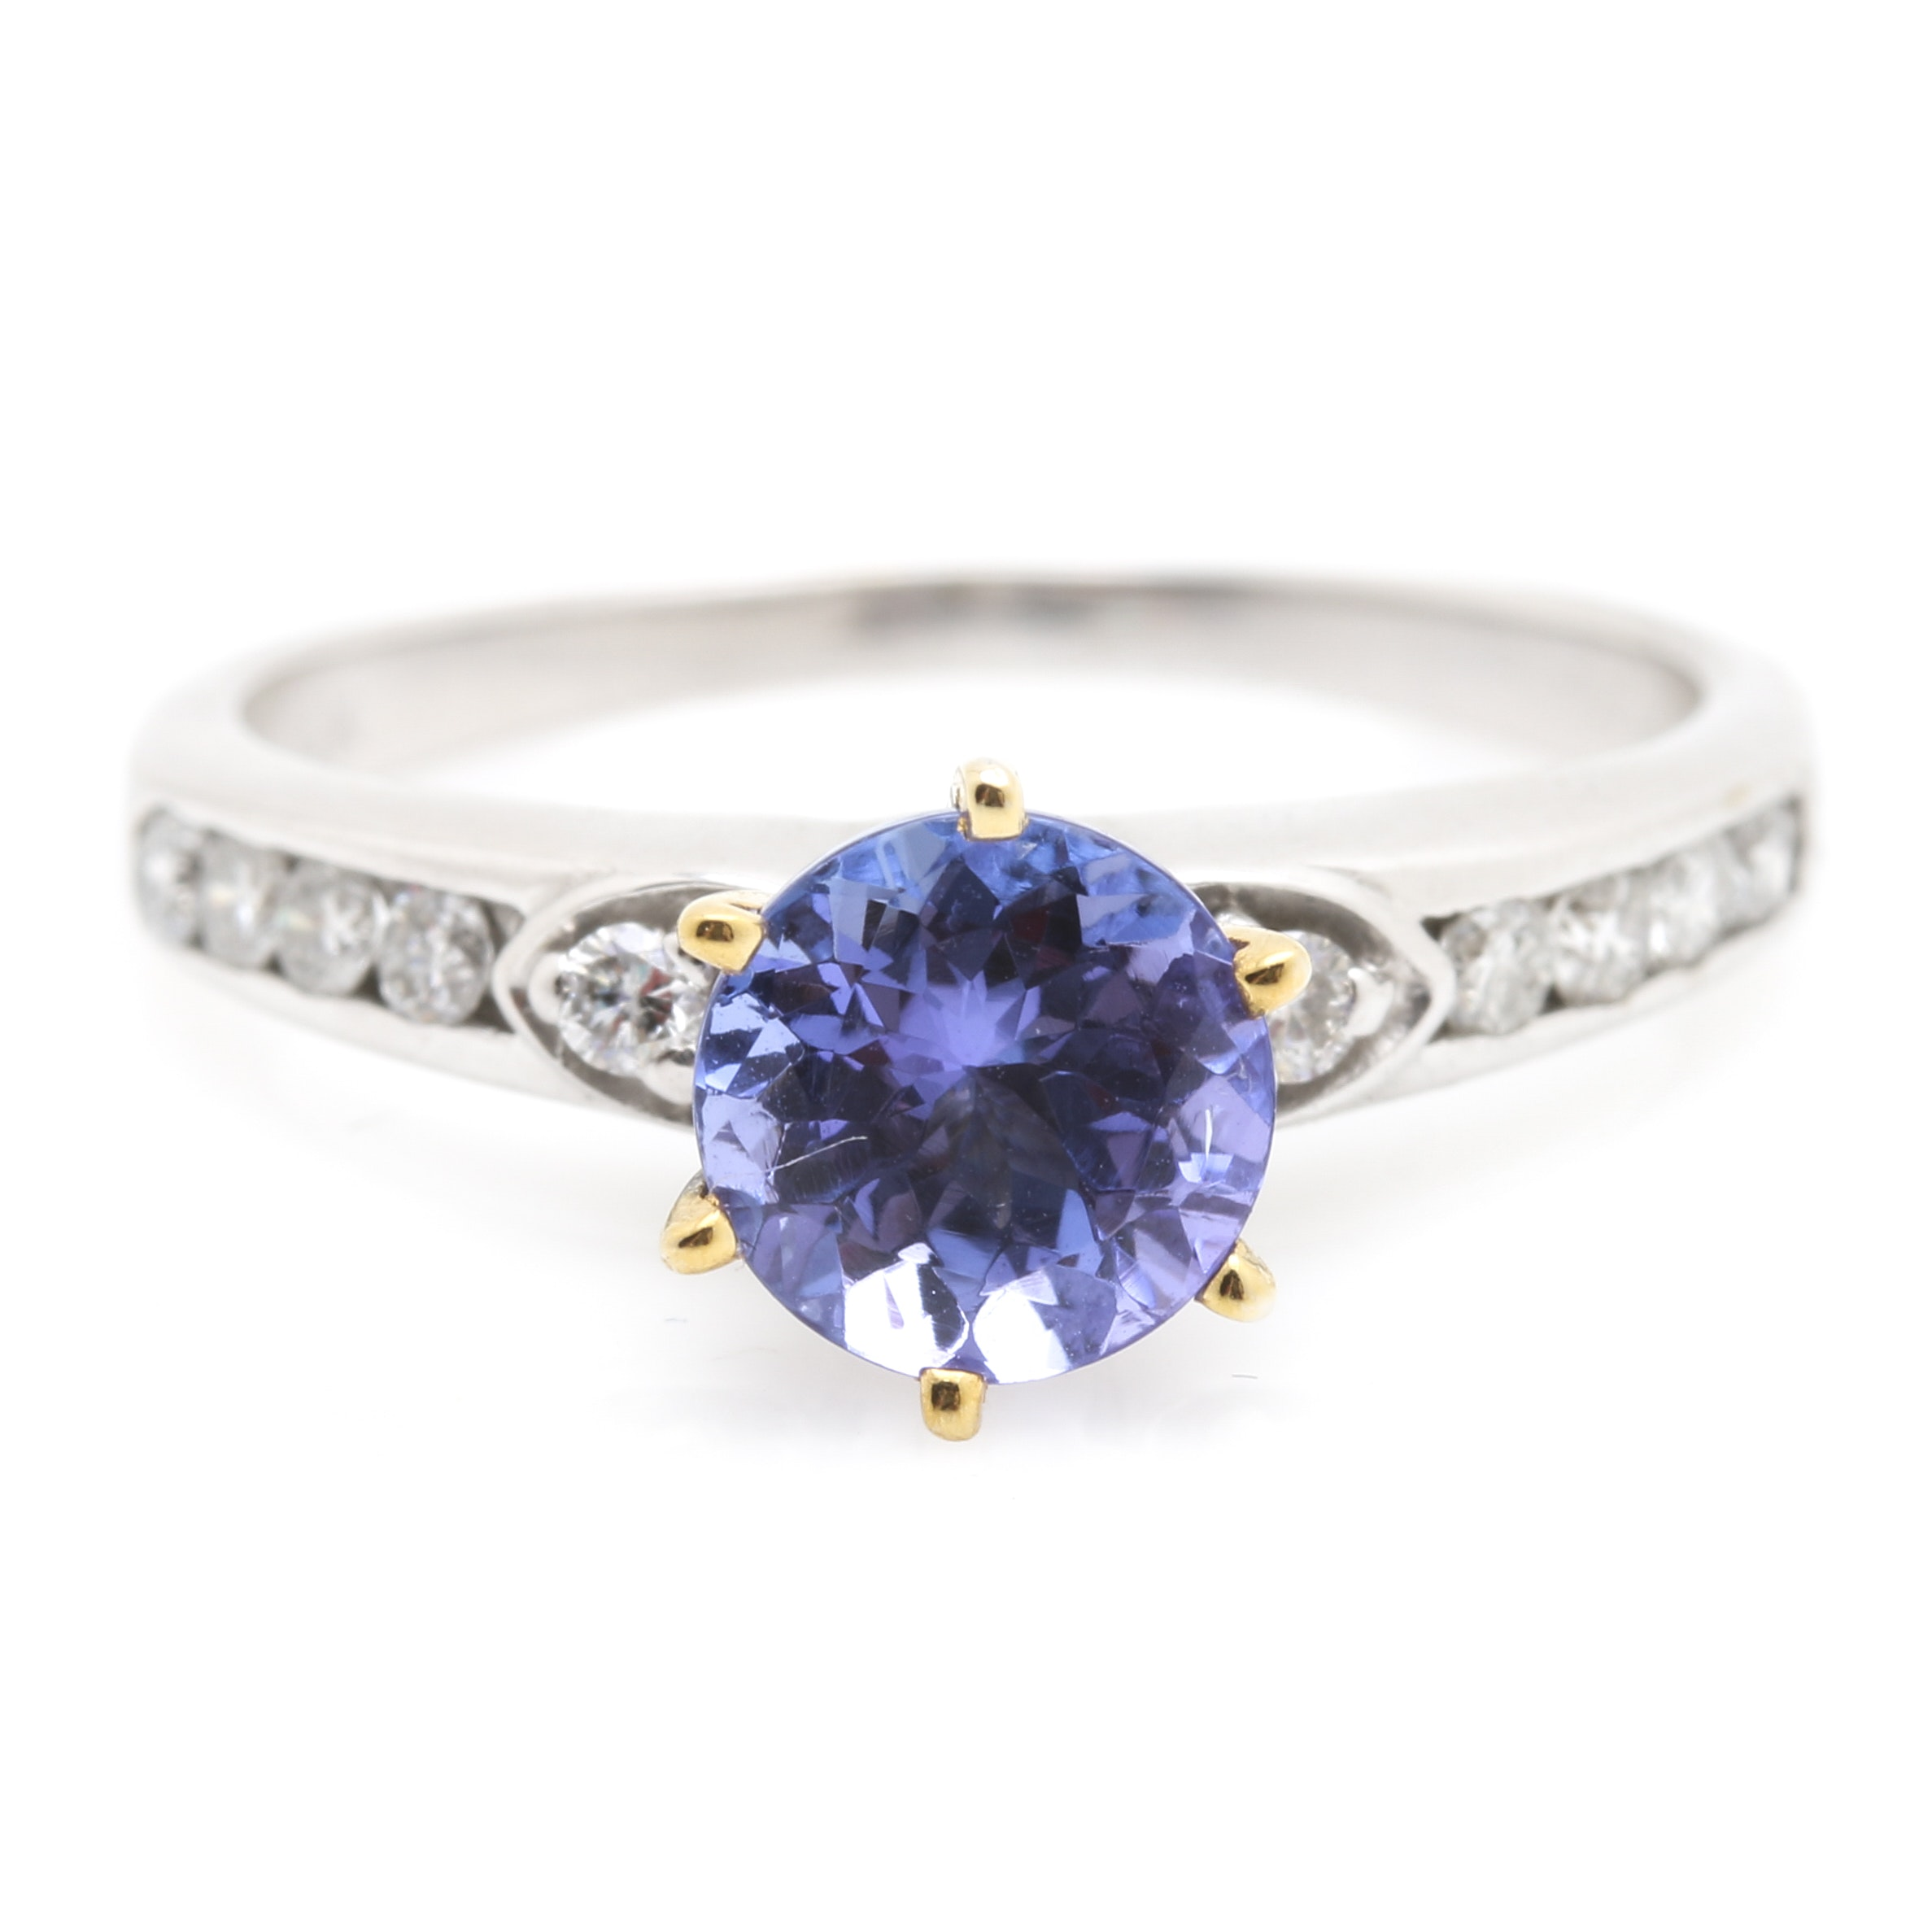 14K White Gold 1.00 Carat Tanzanite and Diamond Ring